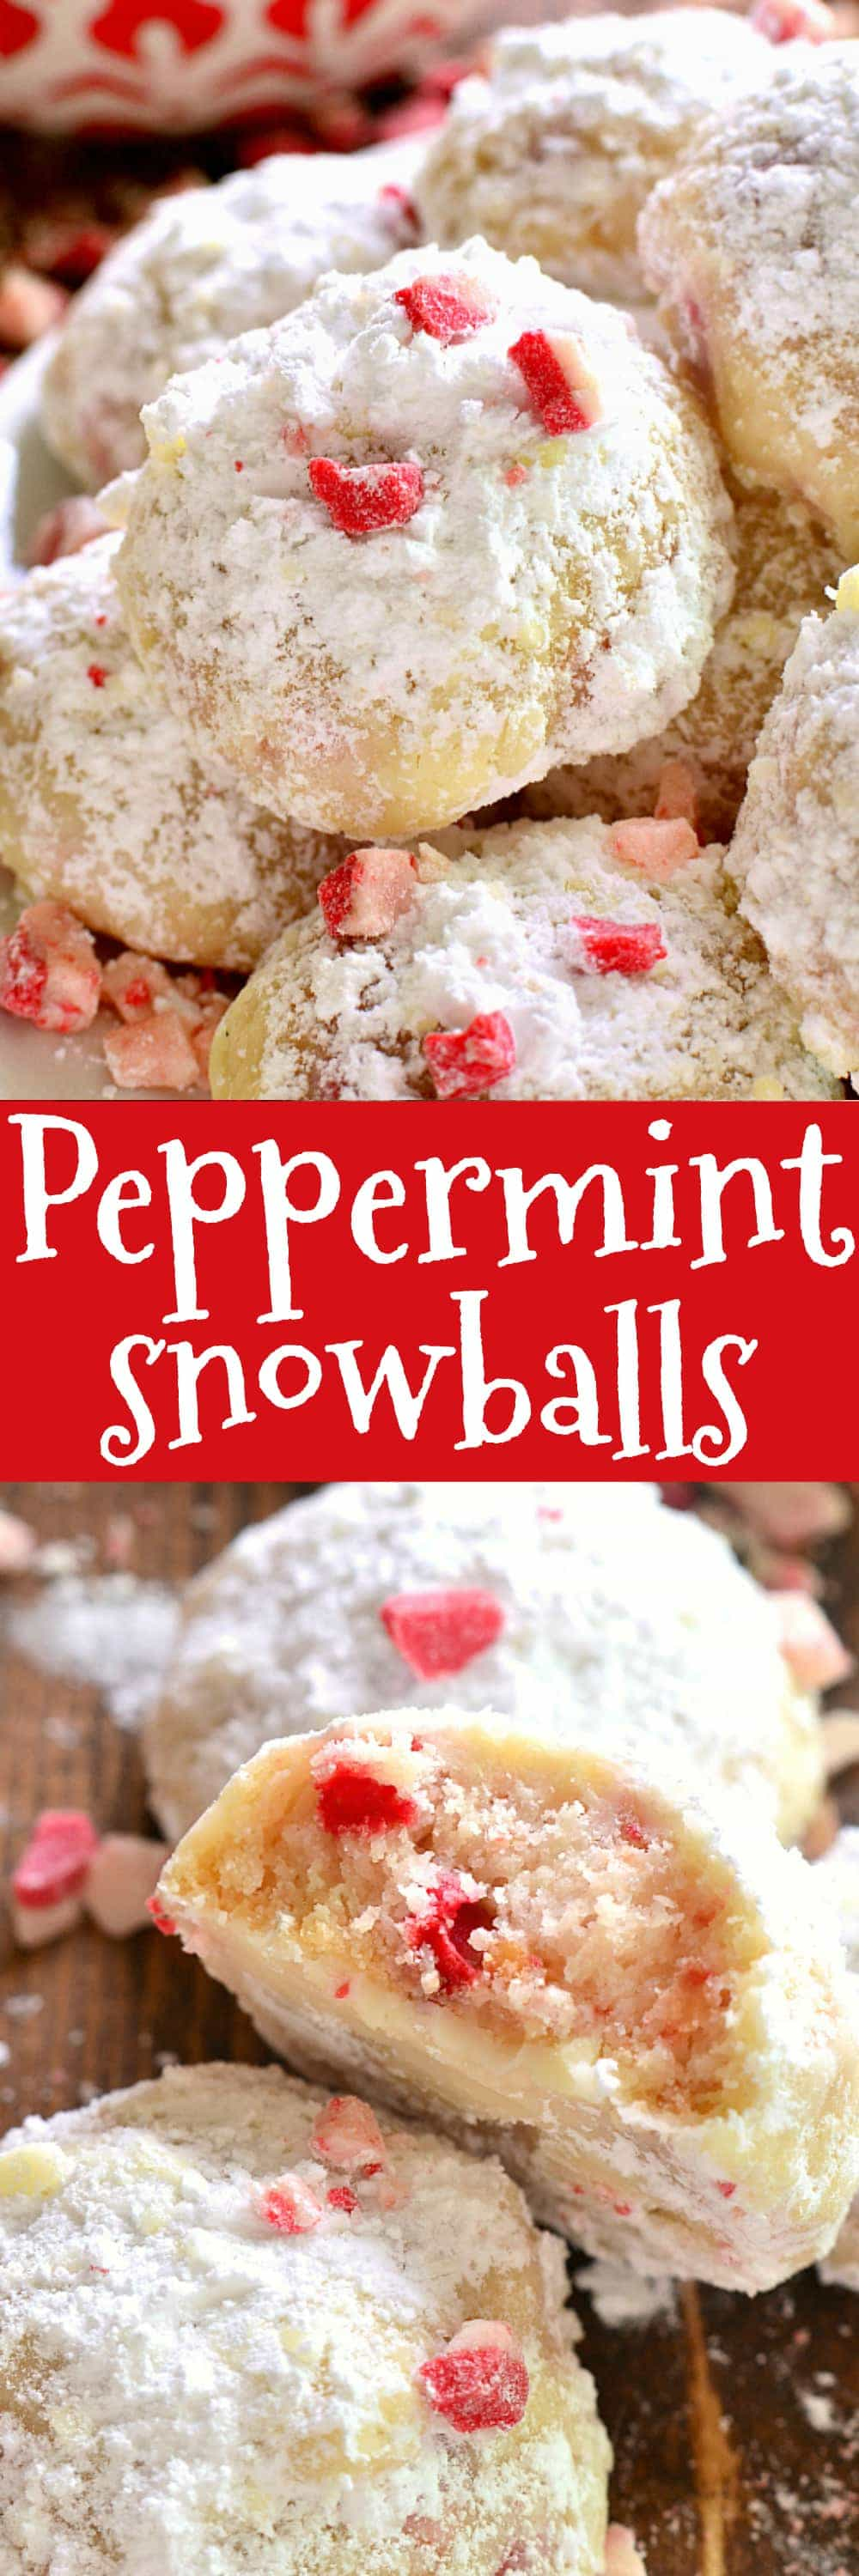 Peppermint Snowballs are the perfect holiday twist on a classic! Packed with delicious peppermint flavor and just the right amount of crunch, these cookies are a must make for all your holiday baking!